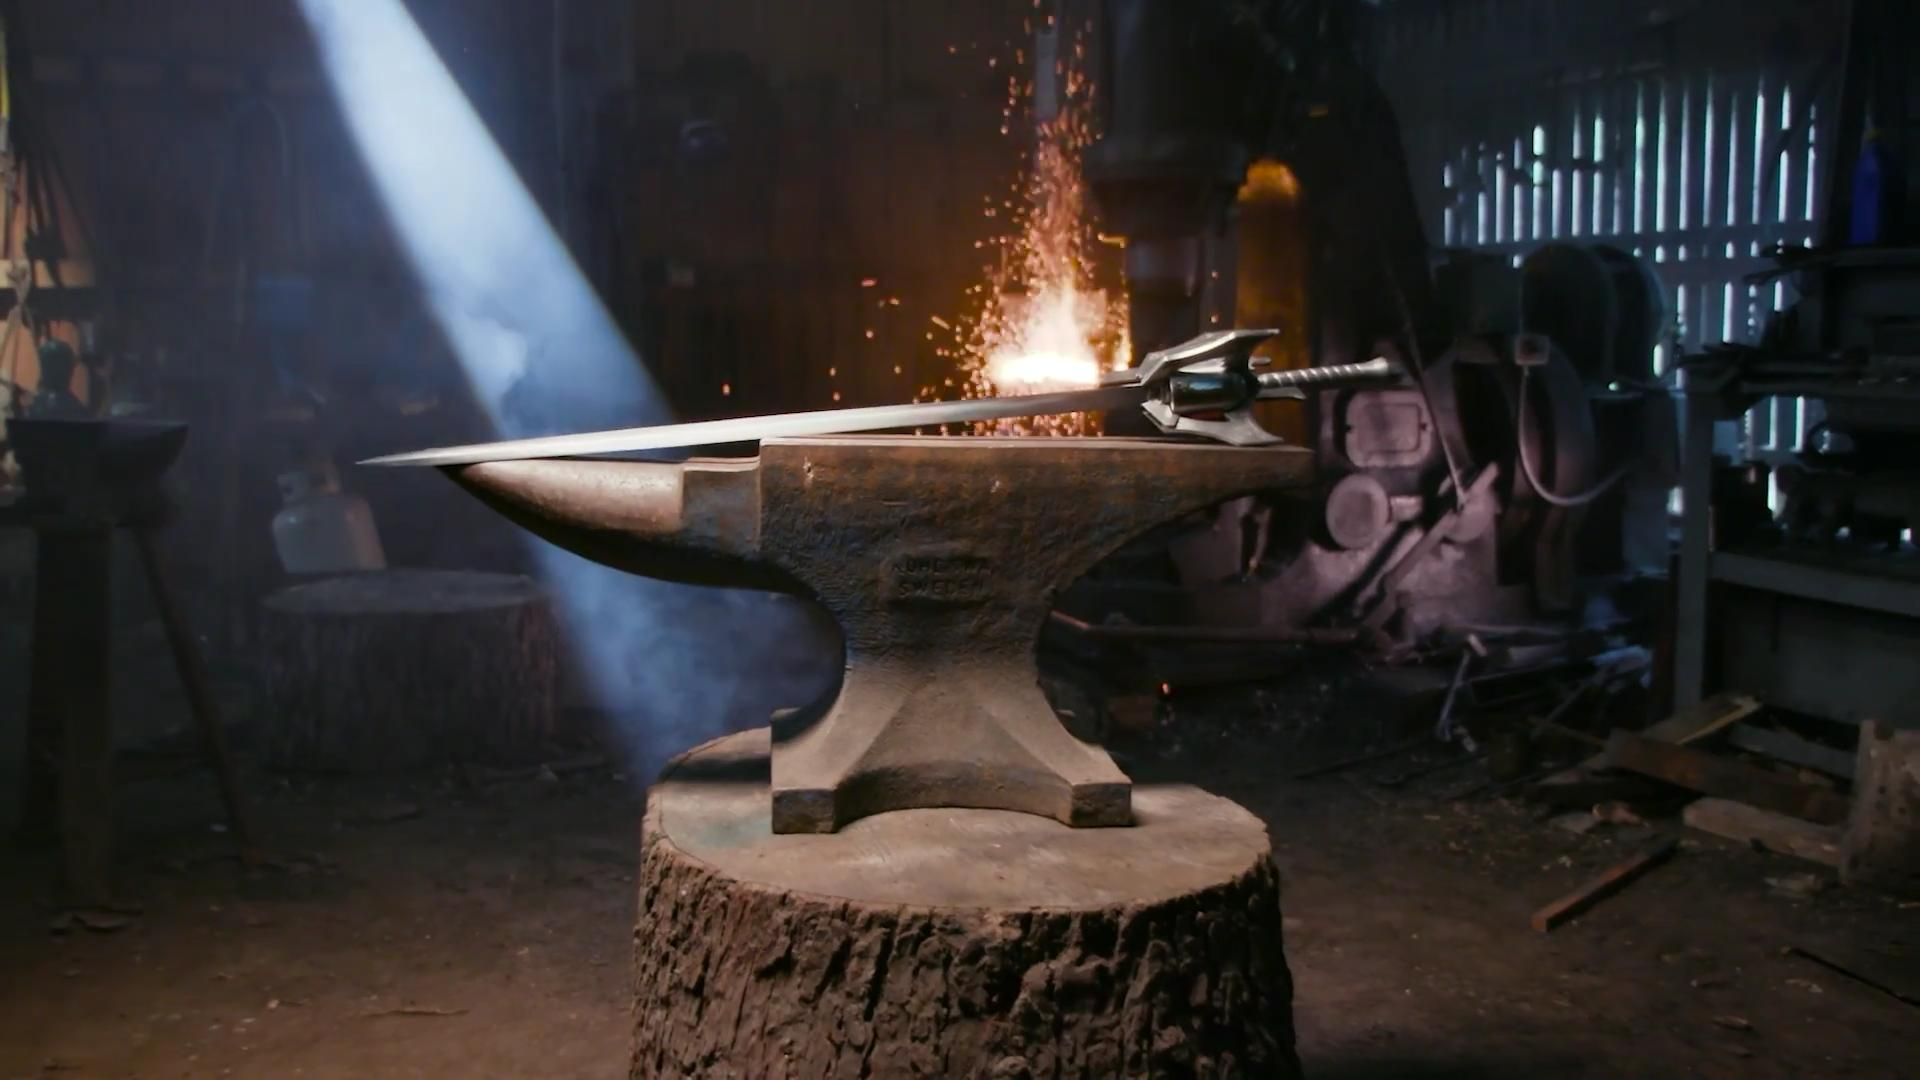 This Week in Making: Sword from RWBY, Paper Lamps, and Video Game Maker